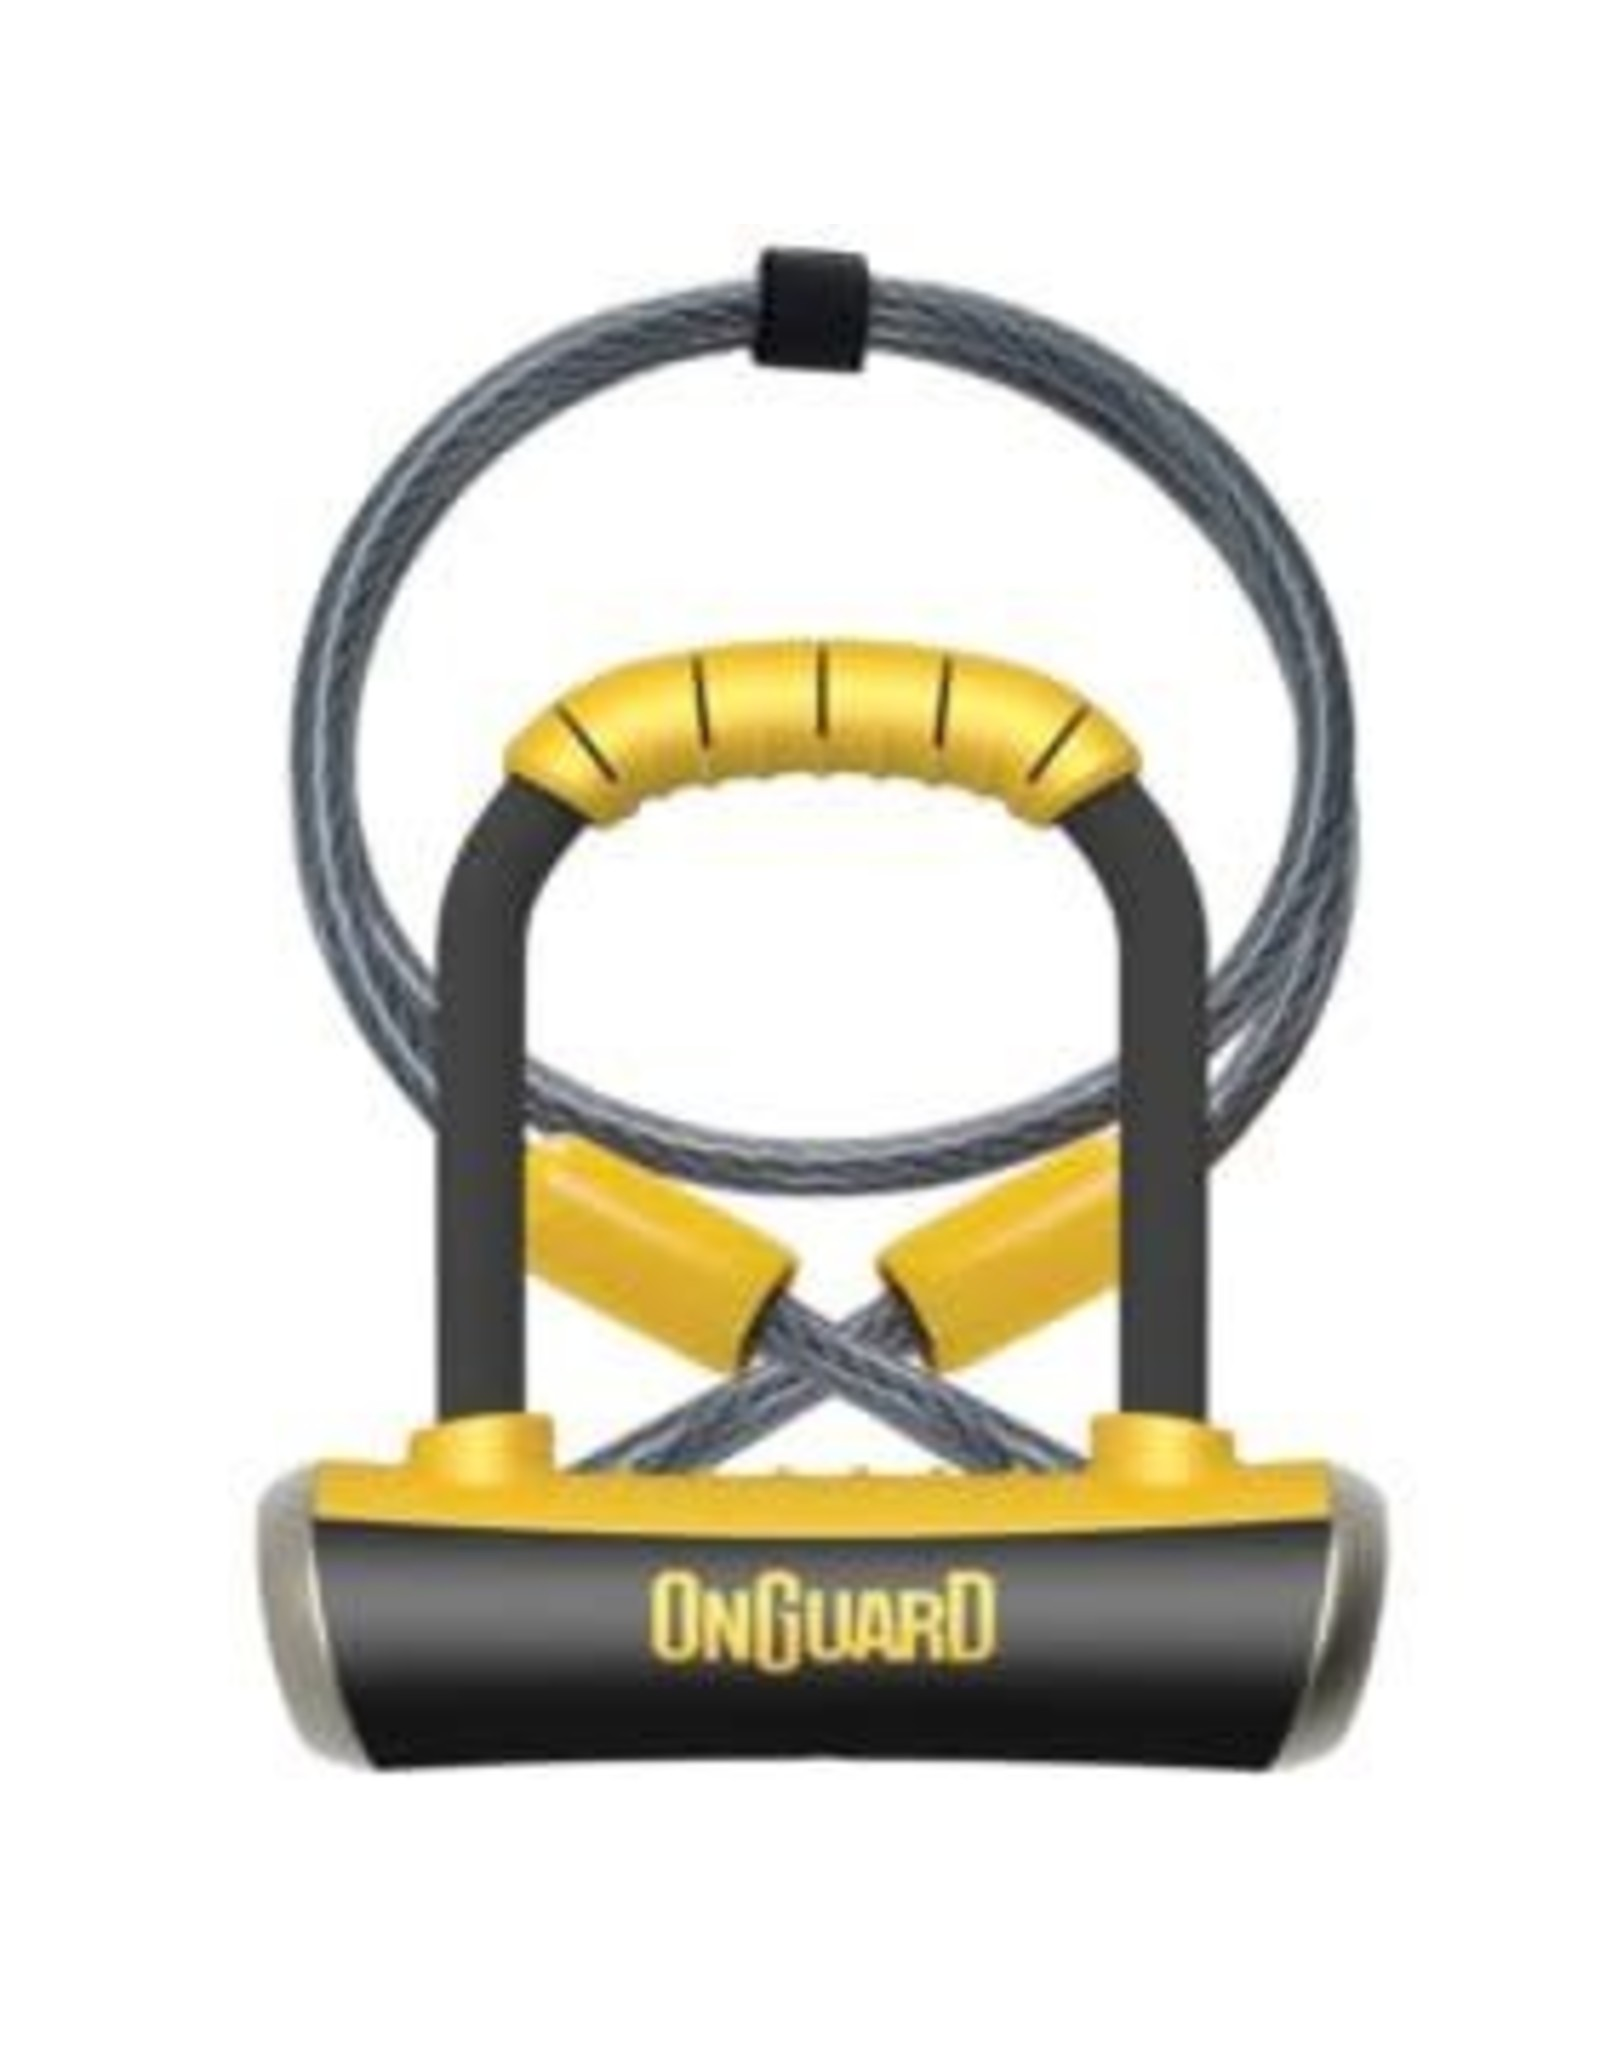 Onguard PITBULL MINI DT 8008